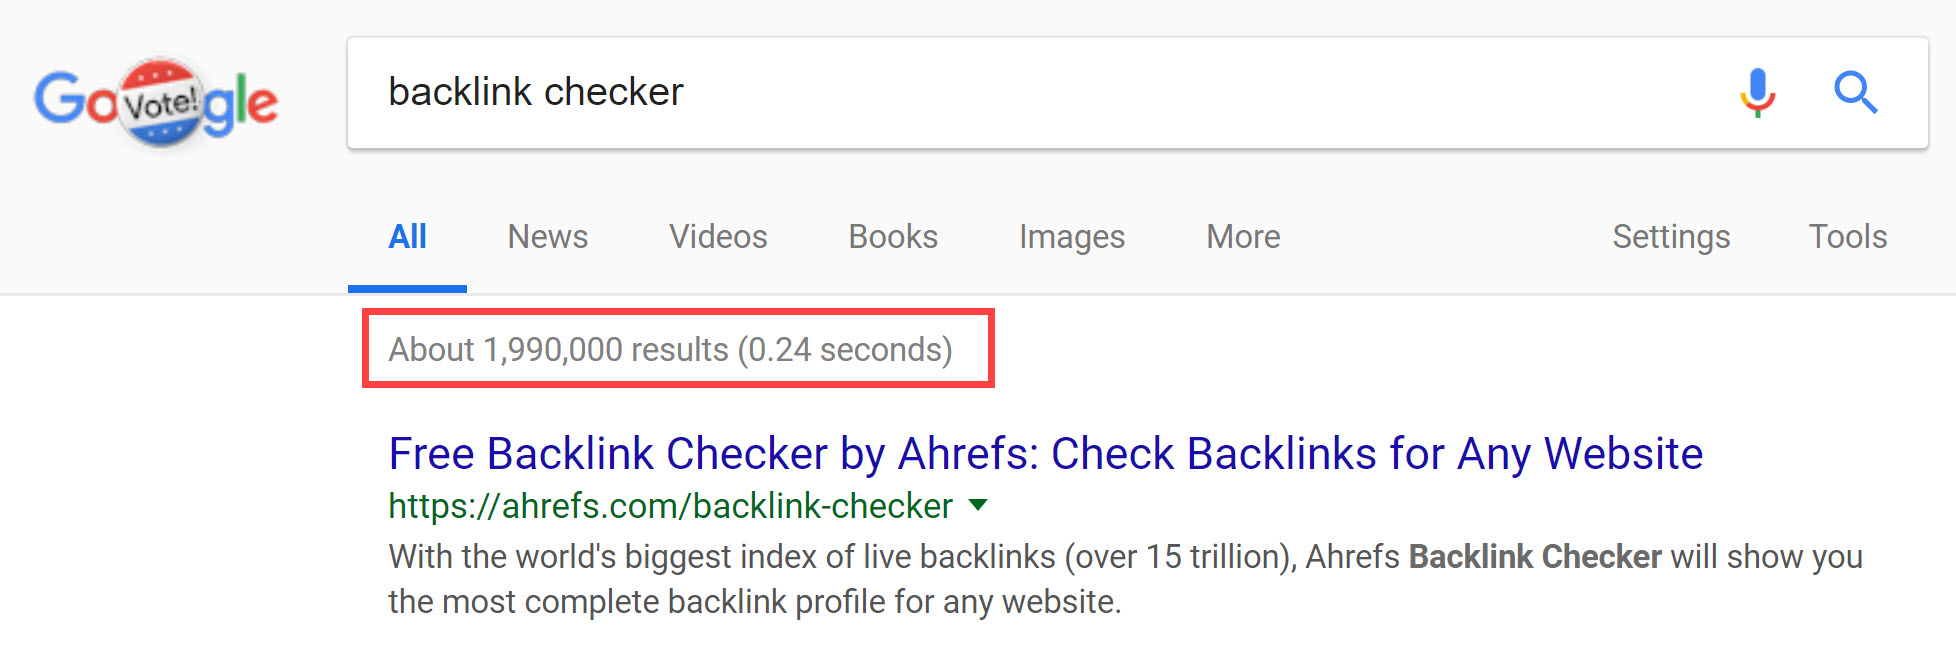 50 Experts Rank Best Backlink Checkers for 2019 (Leaderboards)